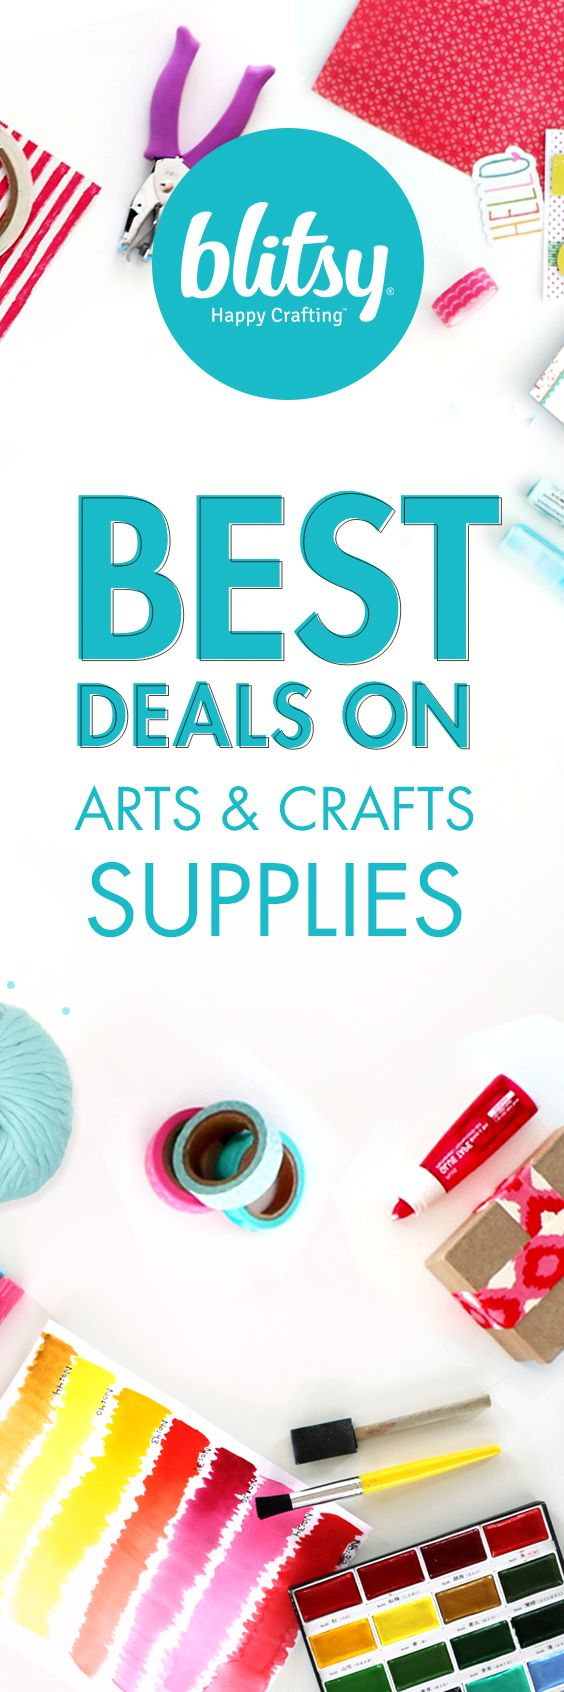 Arts and crafts supplies cheap - Download